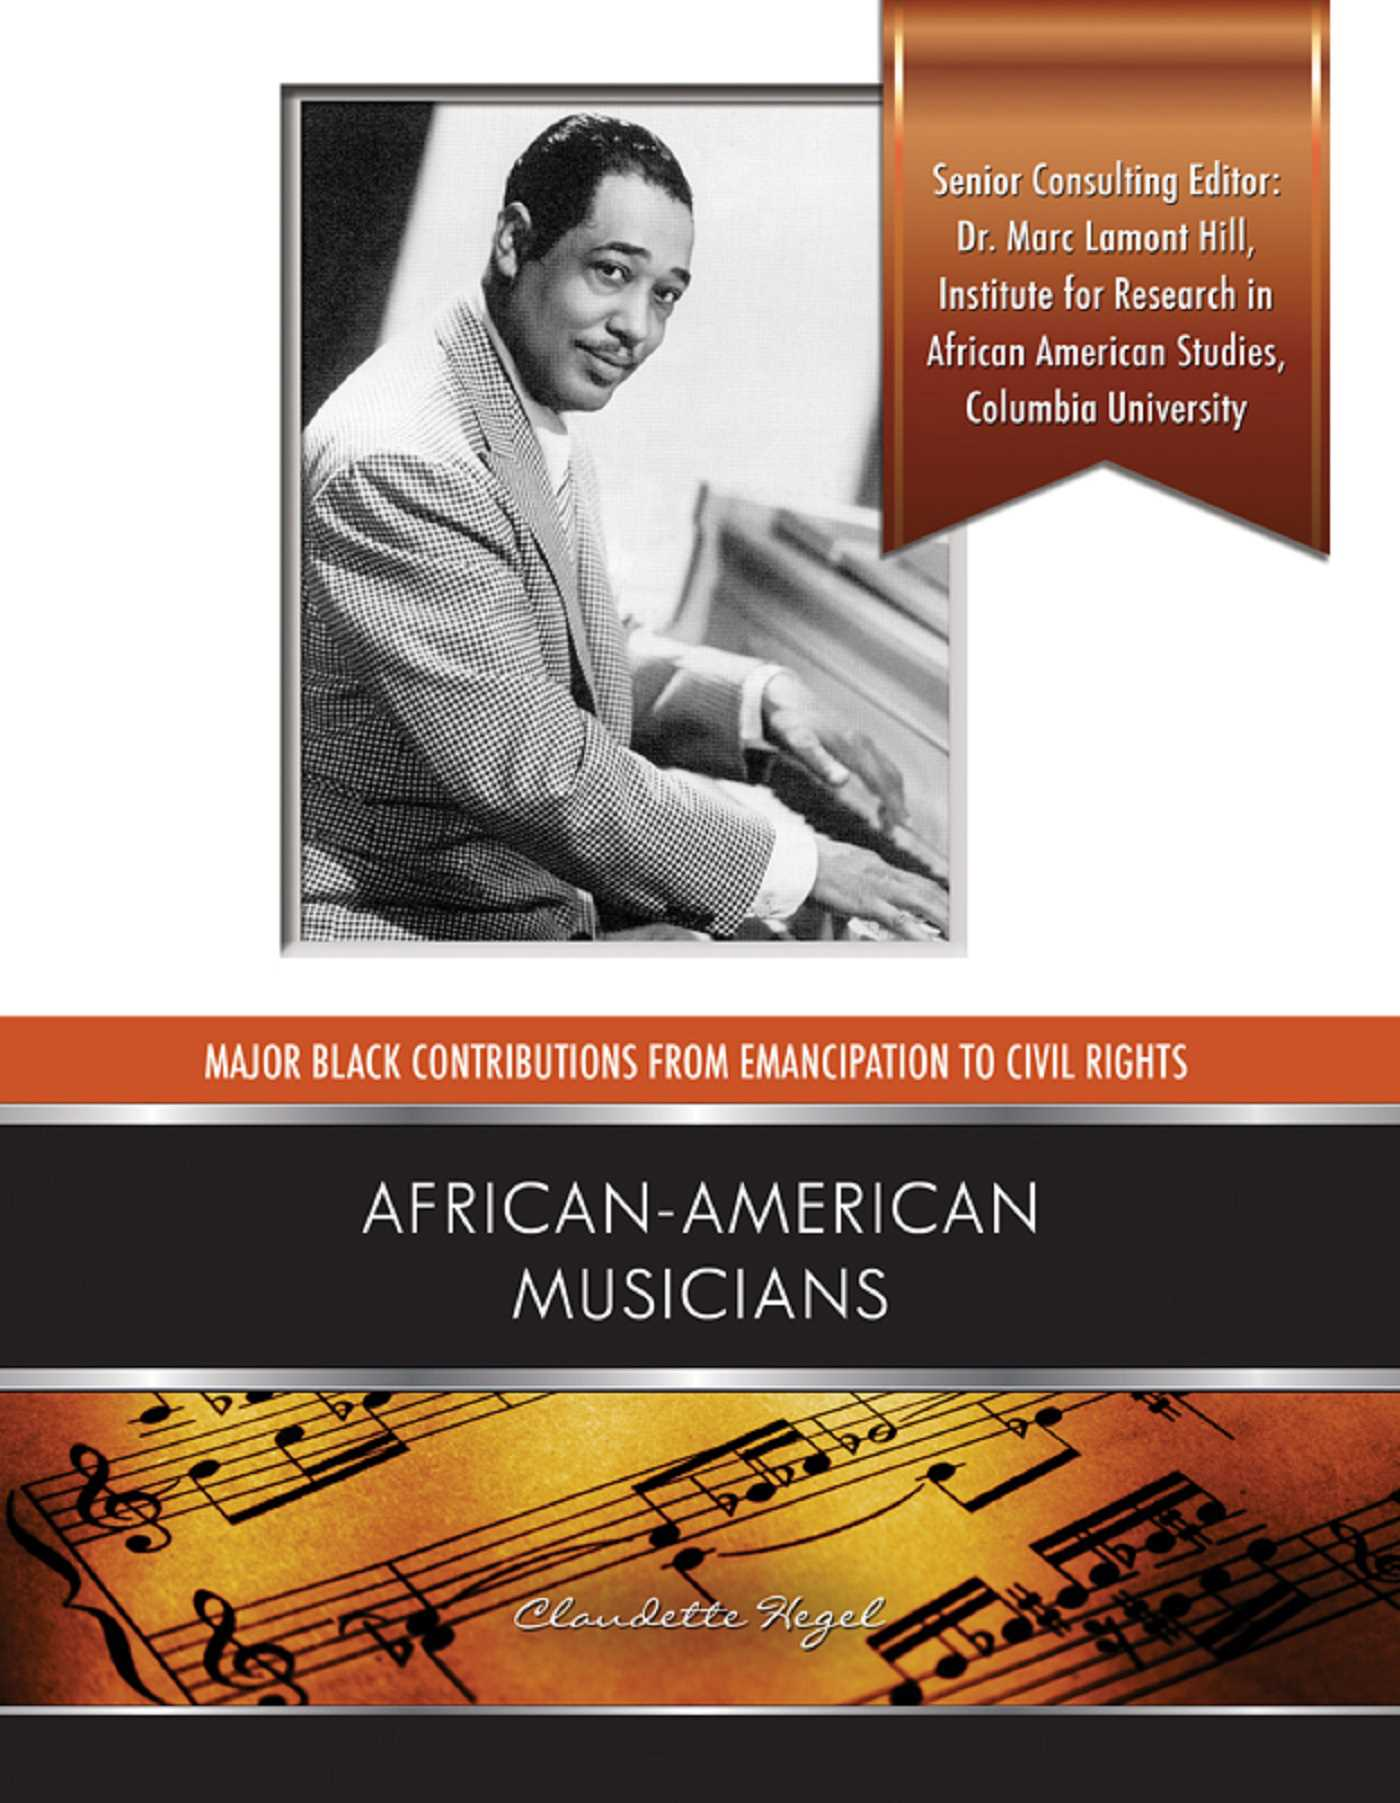 an analysis of the discrimination of african american rock n roll musicians Hairspray in context: race, rock 'n roll and  congress enacts the 1960 civil rights act reaching voting discrimination in  baltimore's african-american.